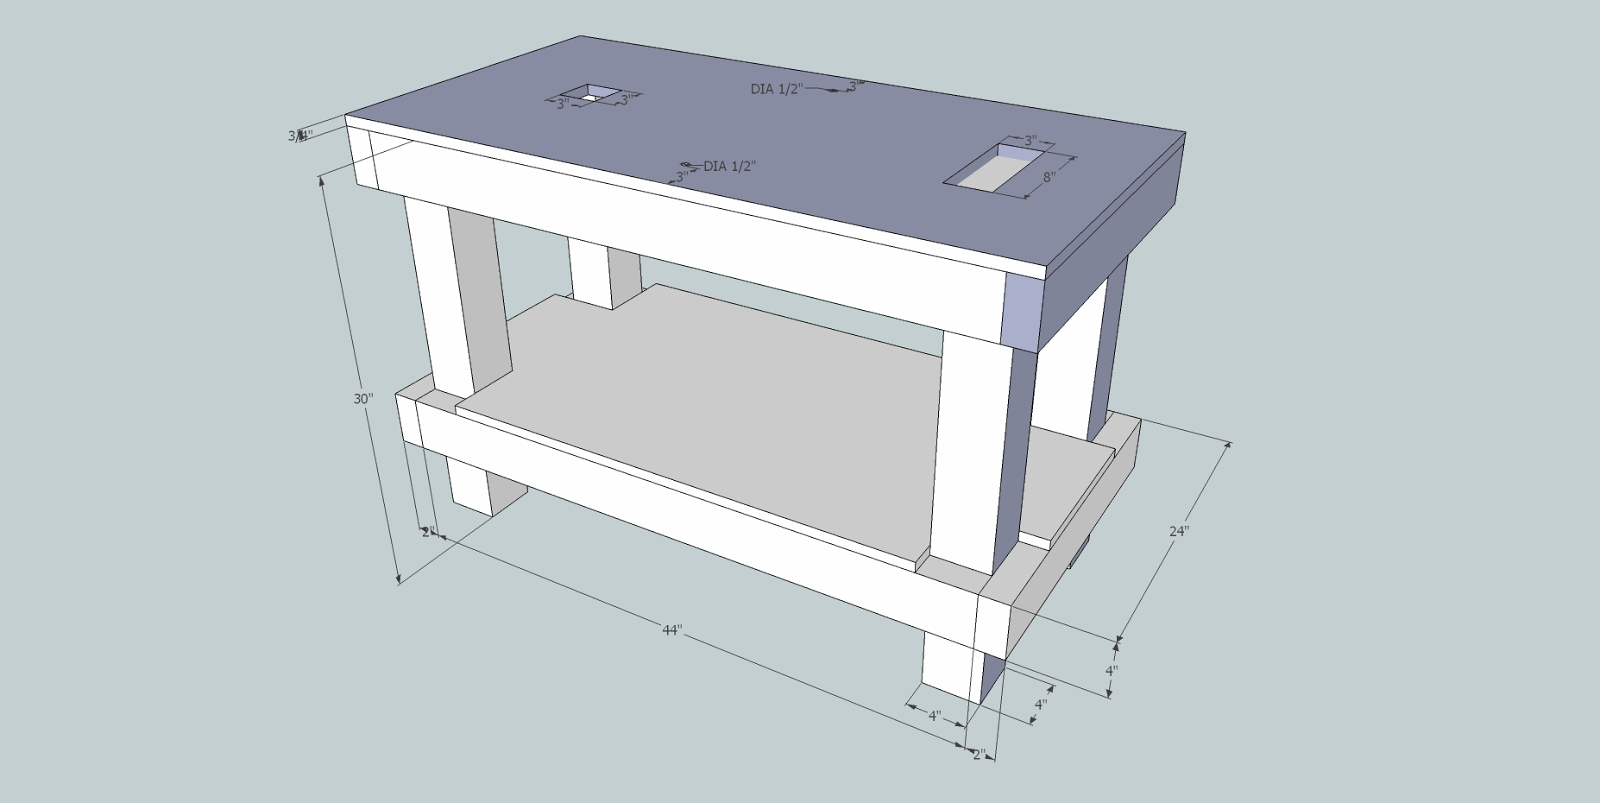 Thinking wood project 2 diy portable 3 in 1 workbench table saw anything the work table is no exception heres a sketchup 3d plan of my design that i tinkered with until i had most of the elements worked out greentooth Gallery